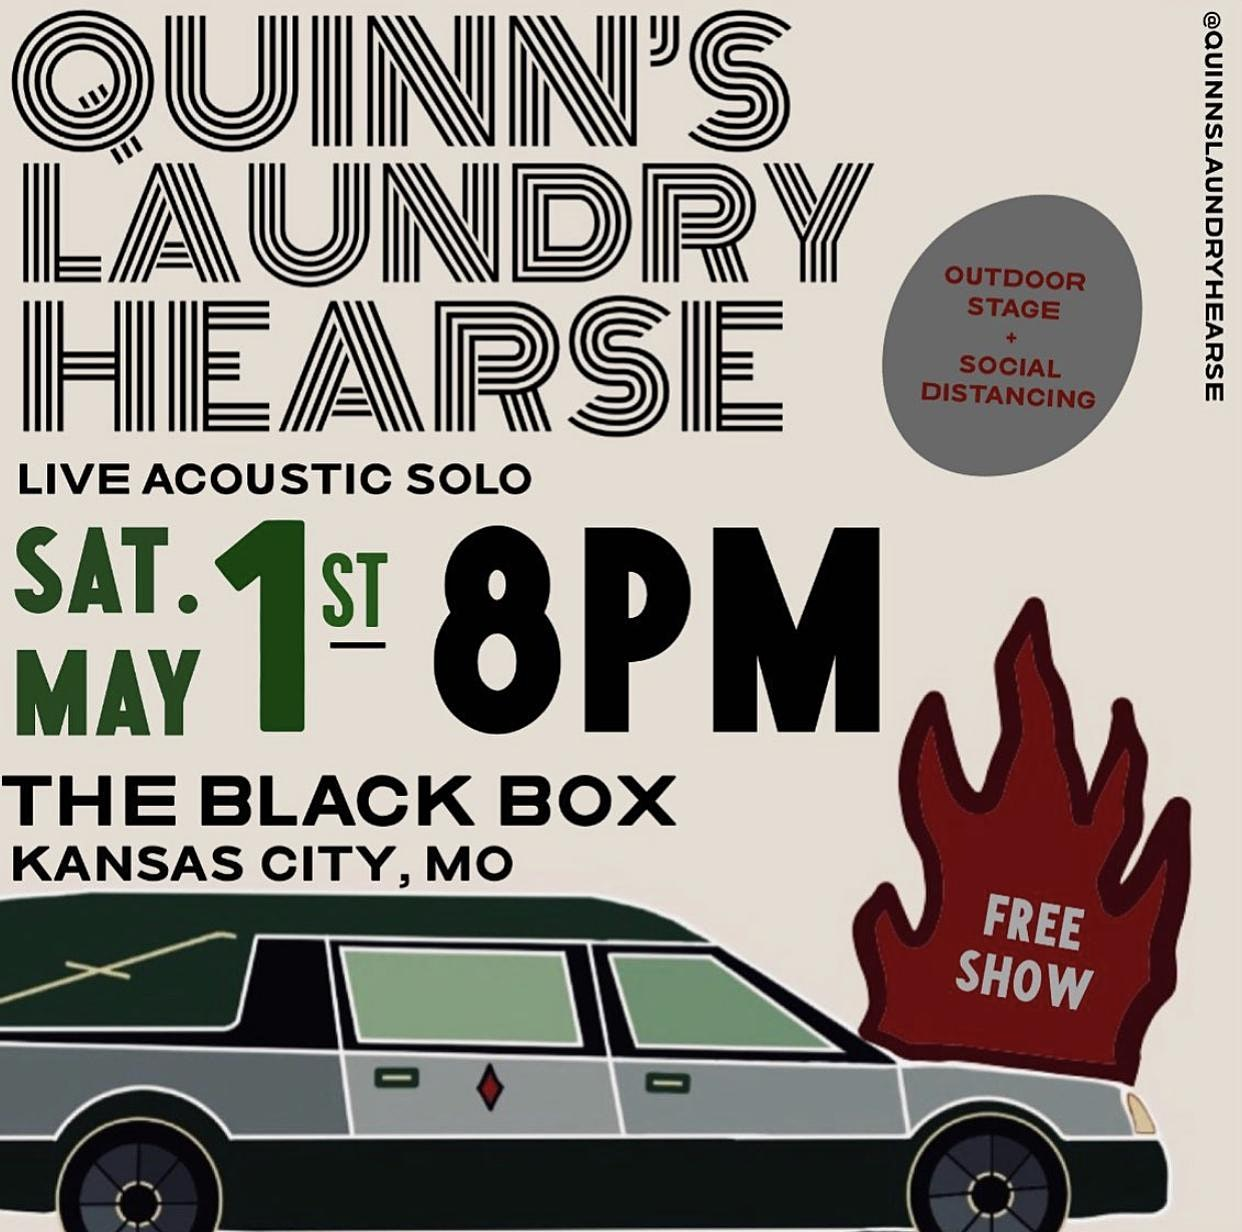 SAT, MAY 1: QUINNS LAUNDRY HEARSE